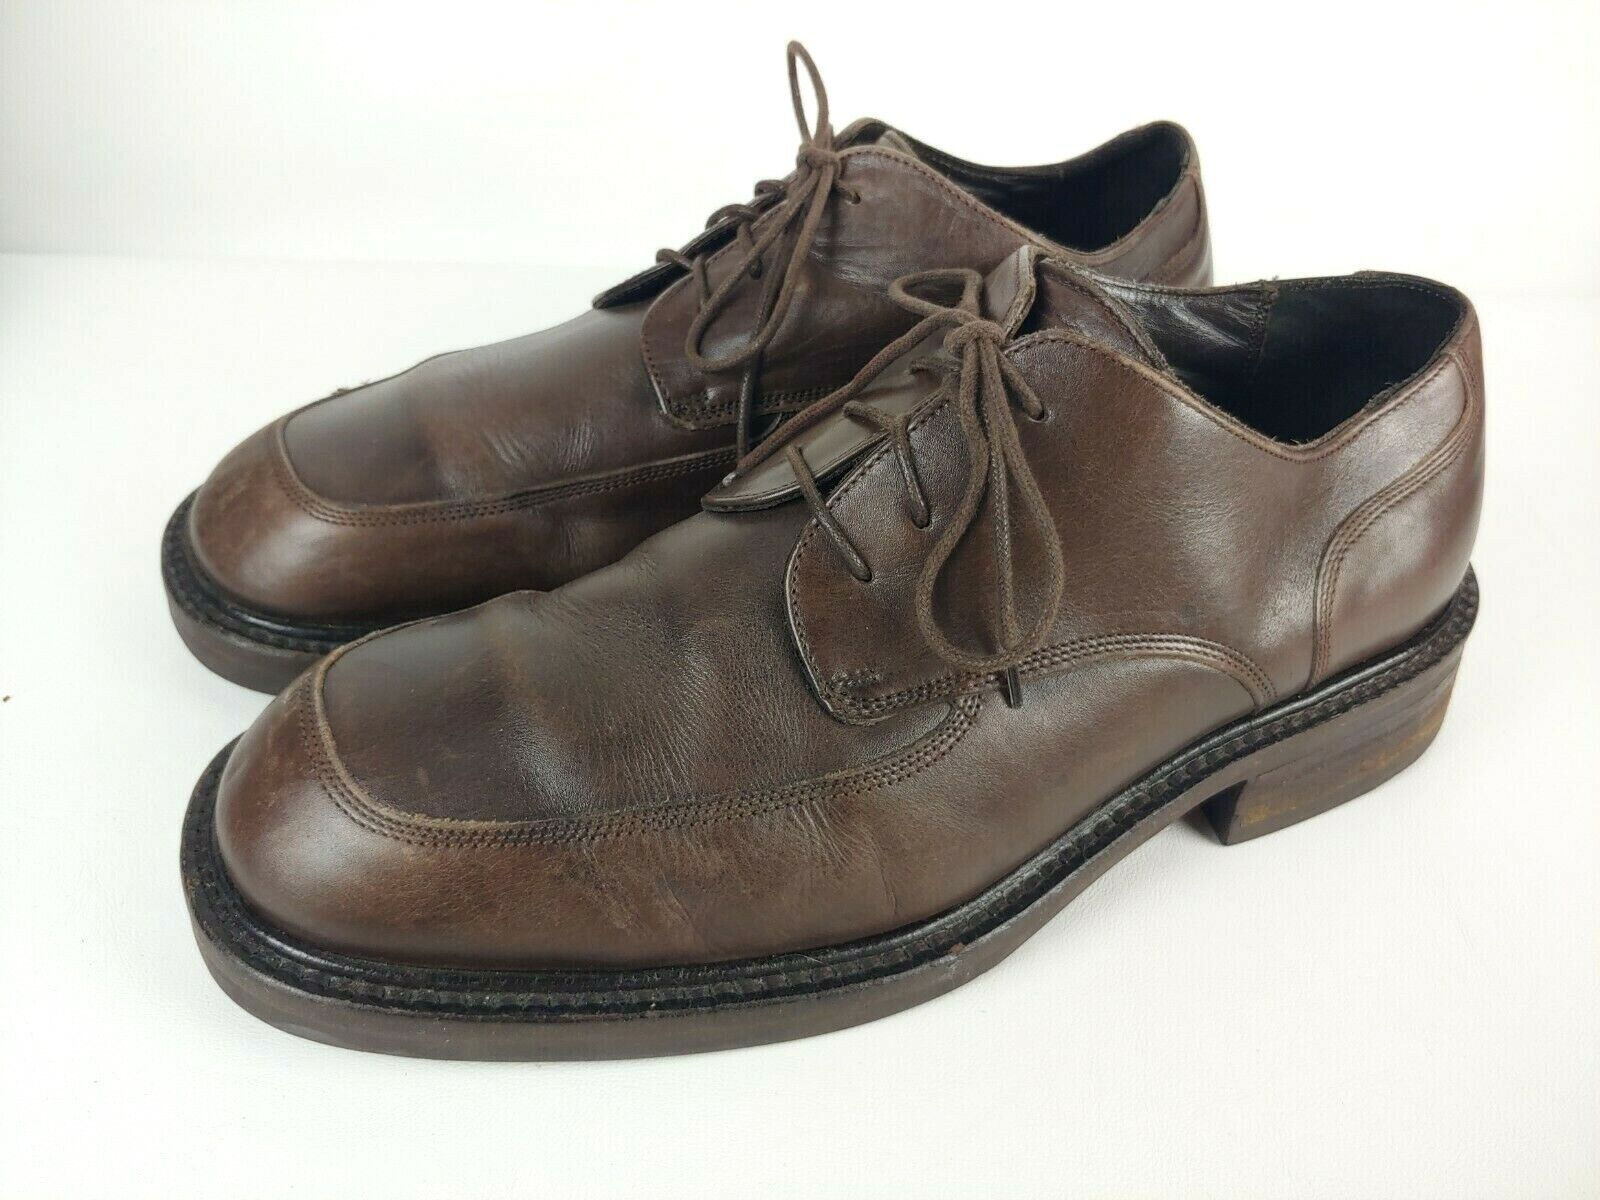 Men's Kenneth Cole New York Brown Leather Lace-Up Oxford Dress Shoes Size 11 M